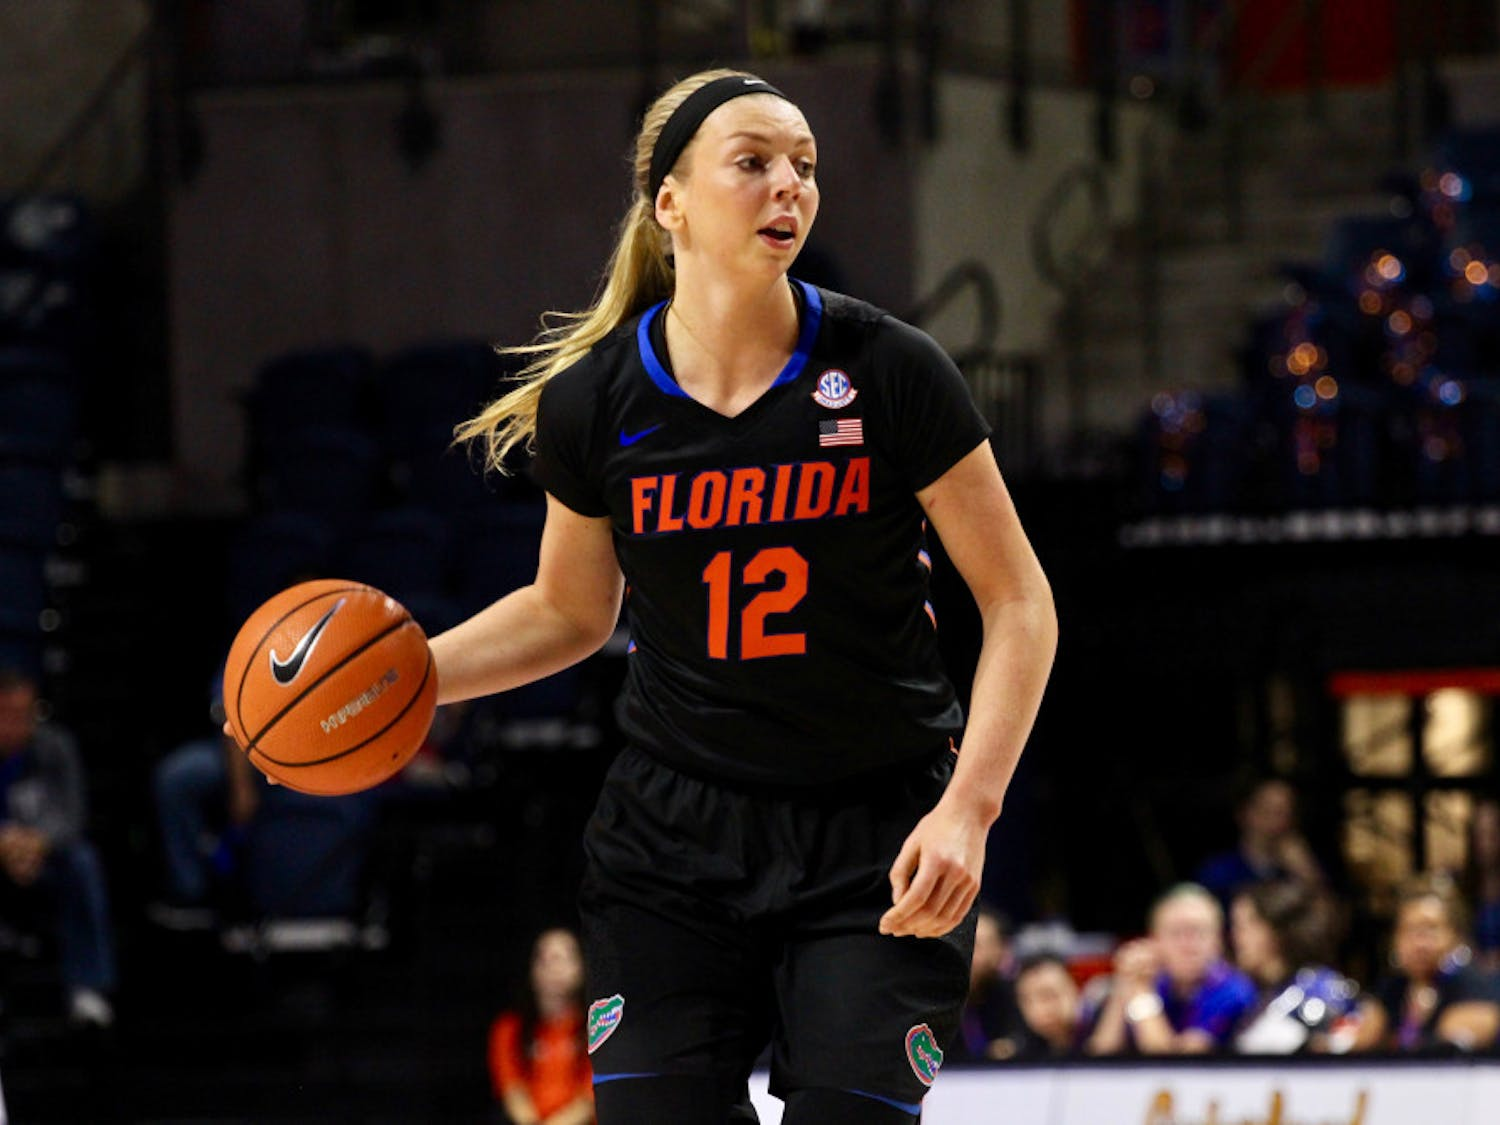 Forward Paulina Hersler put up 12 points and was the only Gator to score in double figures Thursday night against Tennessee.